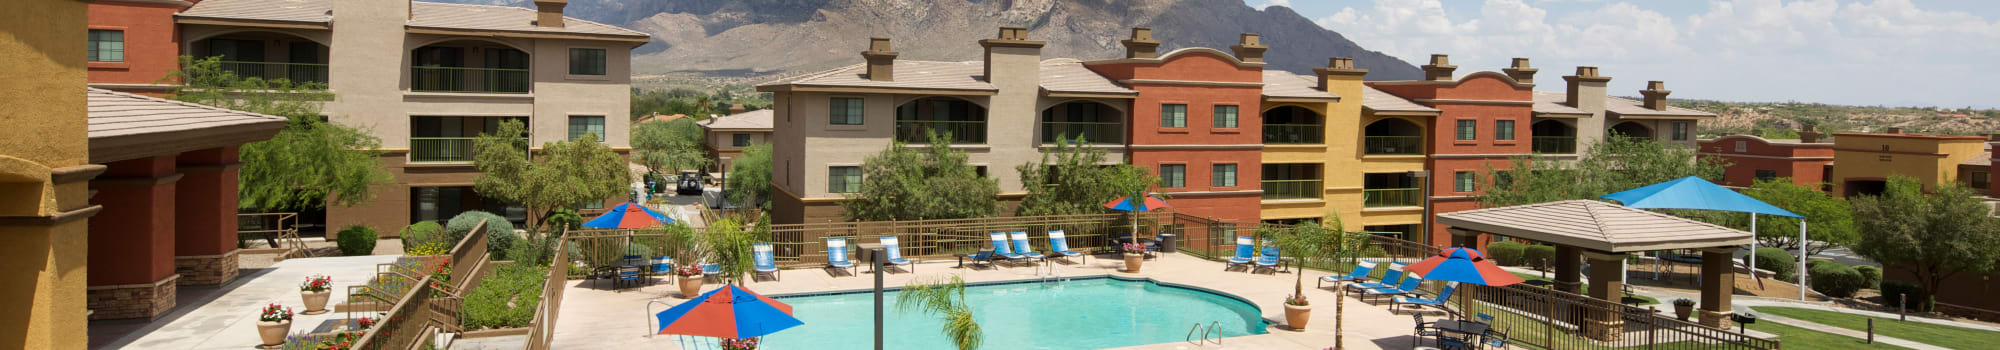 Careers at Oro Vista Apartments in Oro Valley, Arizona